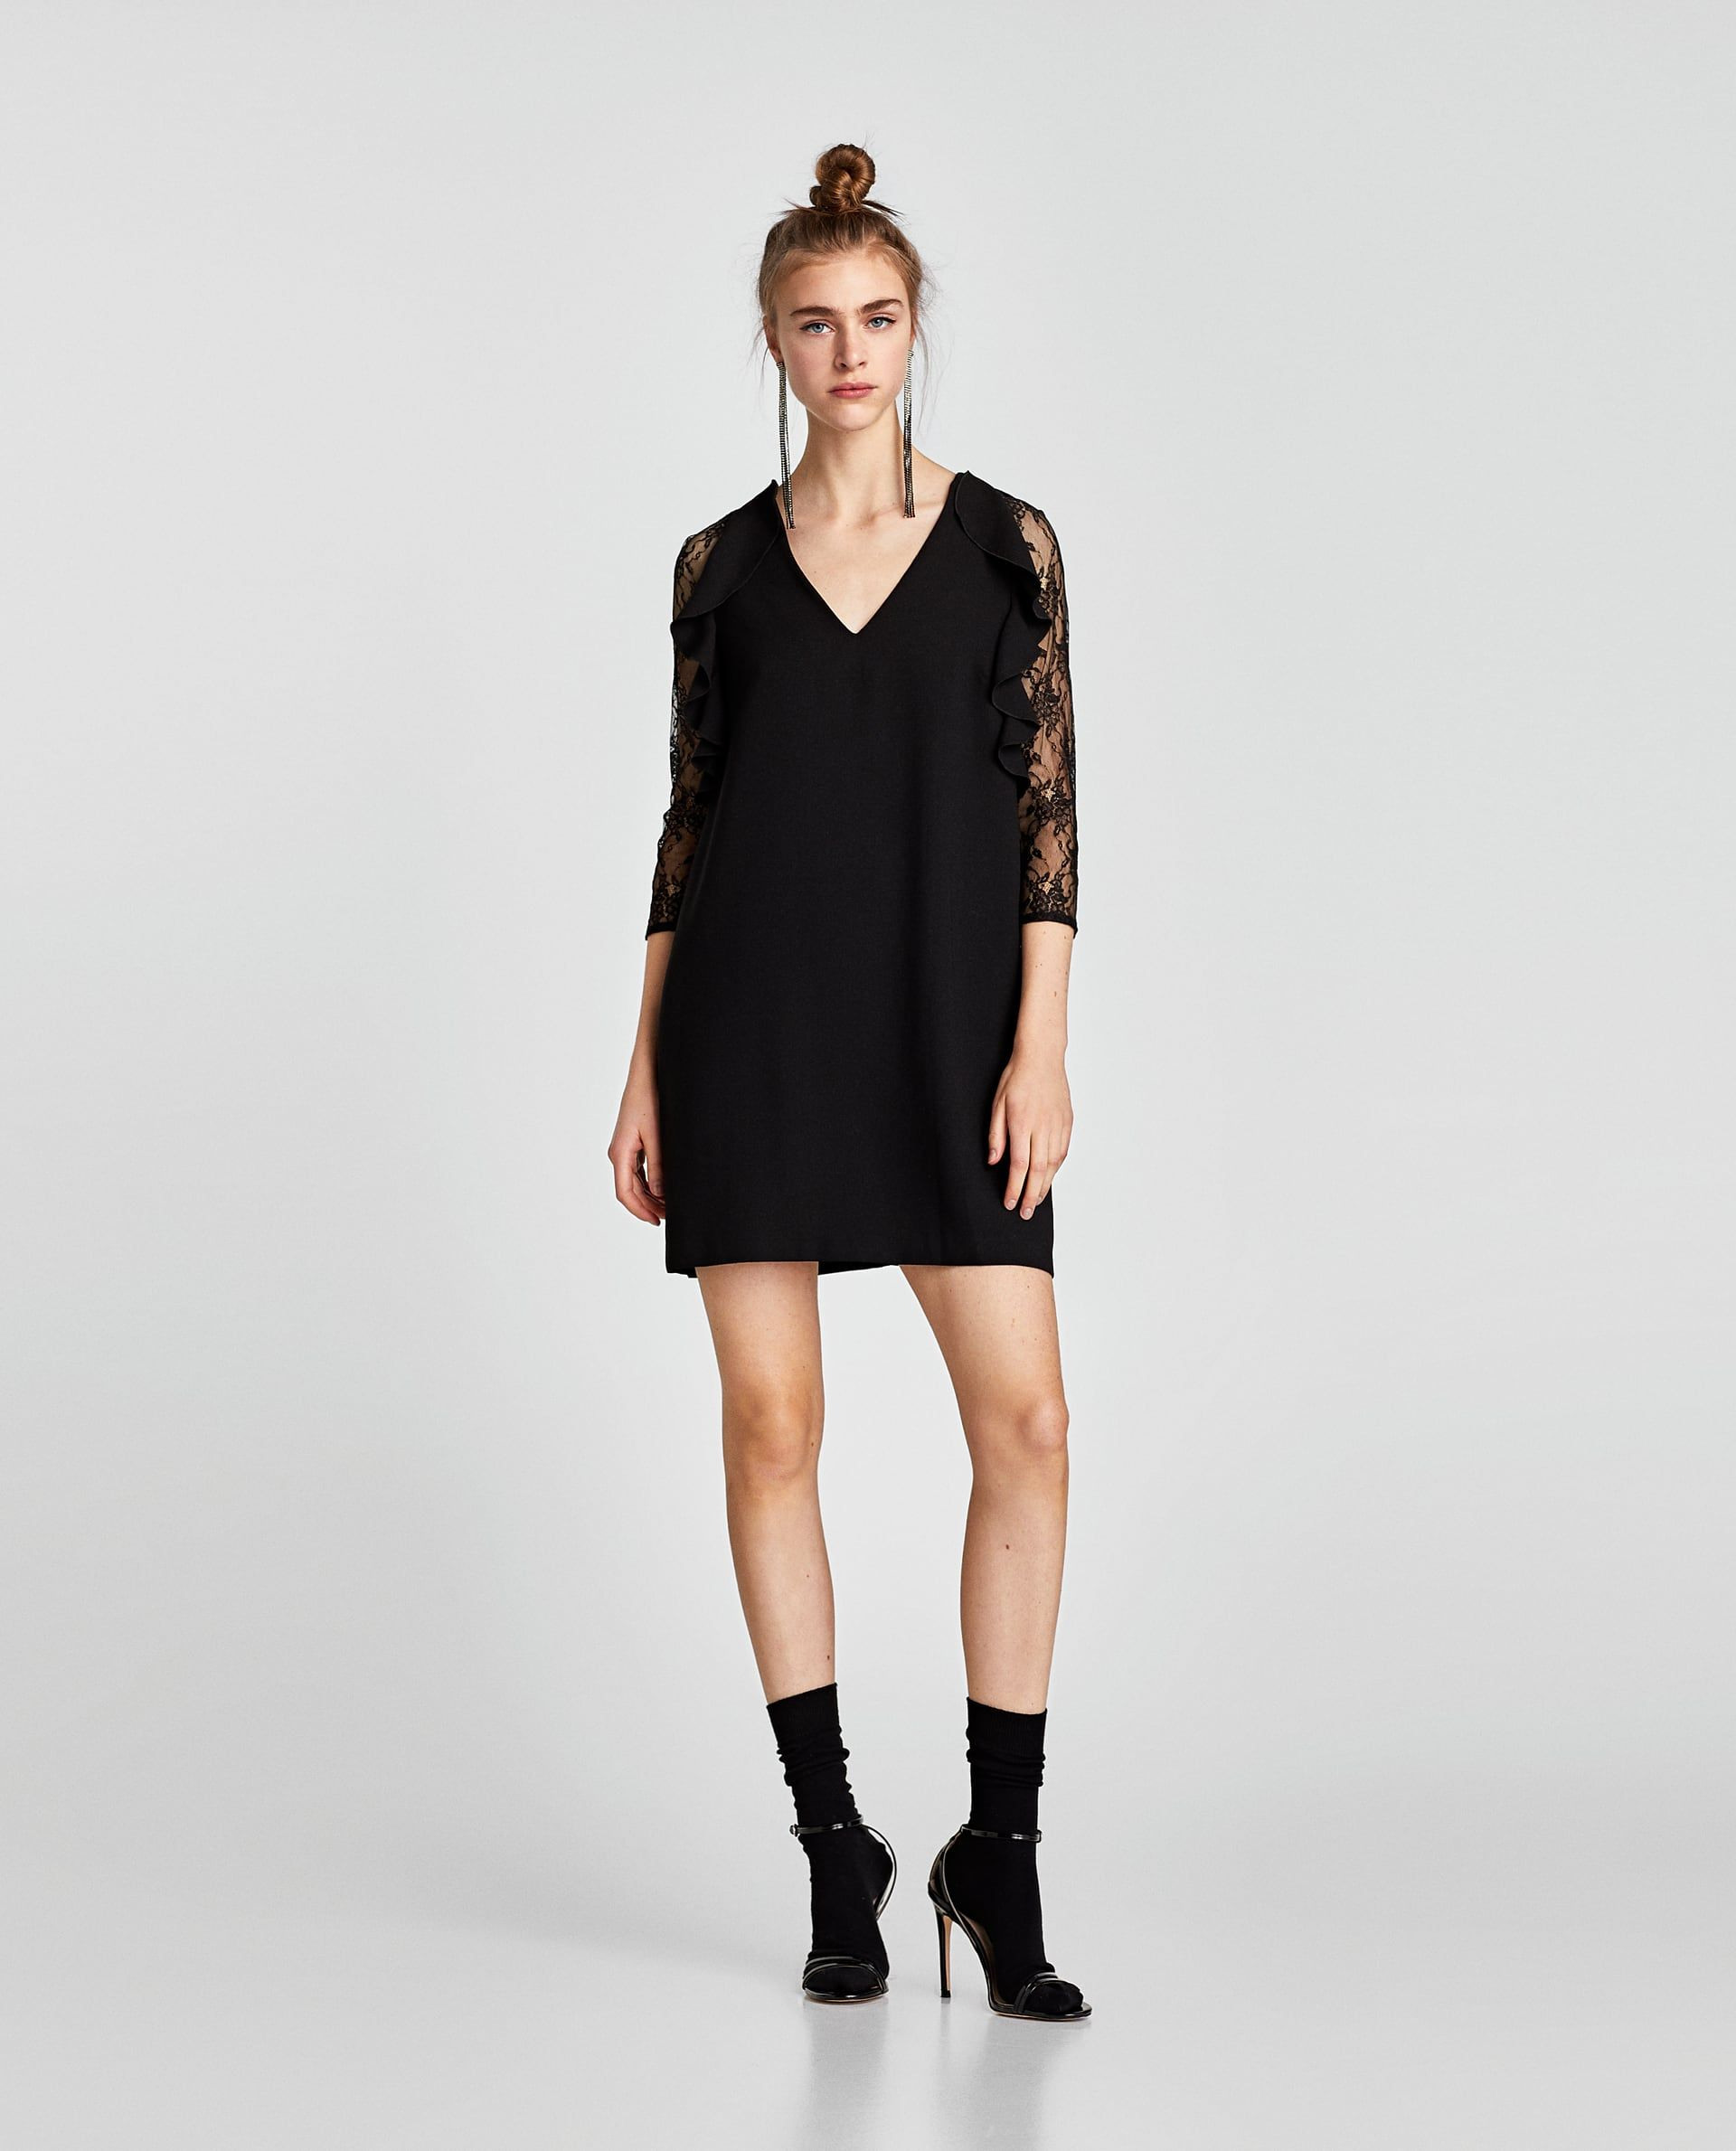 Contrast lace dress zara  Image  of CONTRAST LACE DRESS from Zara  ZARA   Pinterest